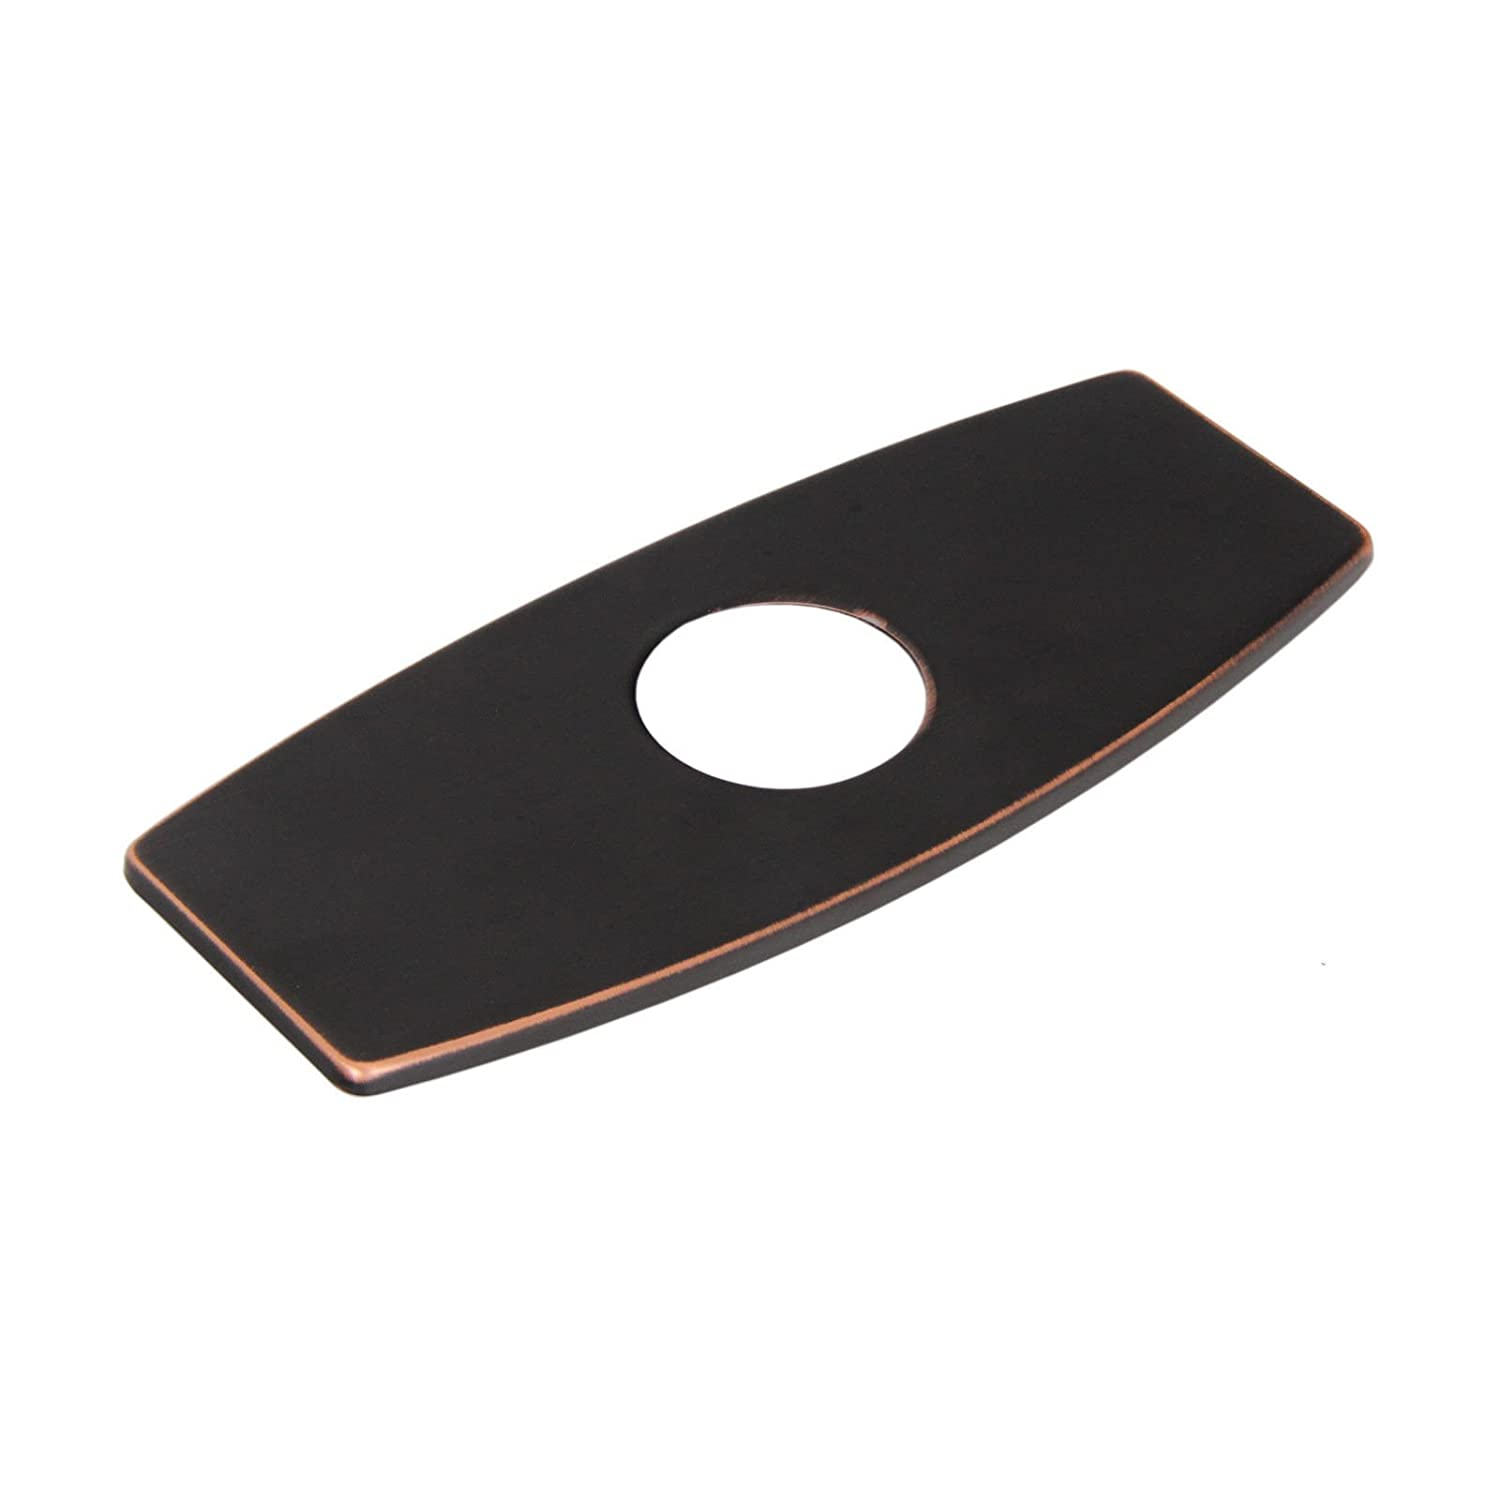 Wovier Oil Rubbed Bronze 3-to-1 Rectangle Shaped Polished,Suitable For 4 Inch Sink(total length 6.25 inch), Hole Cover Deck Faucet Plate Escutcheon